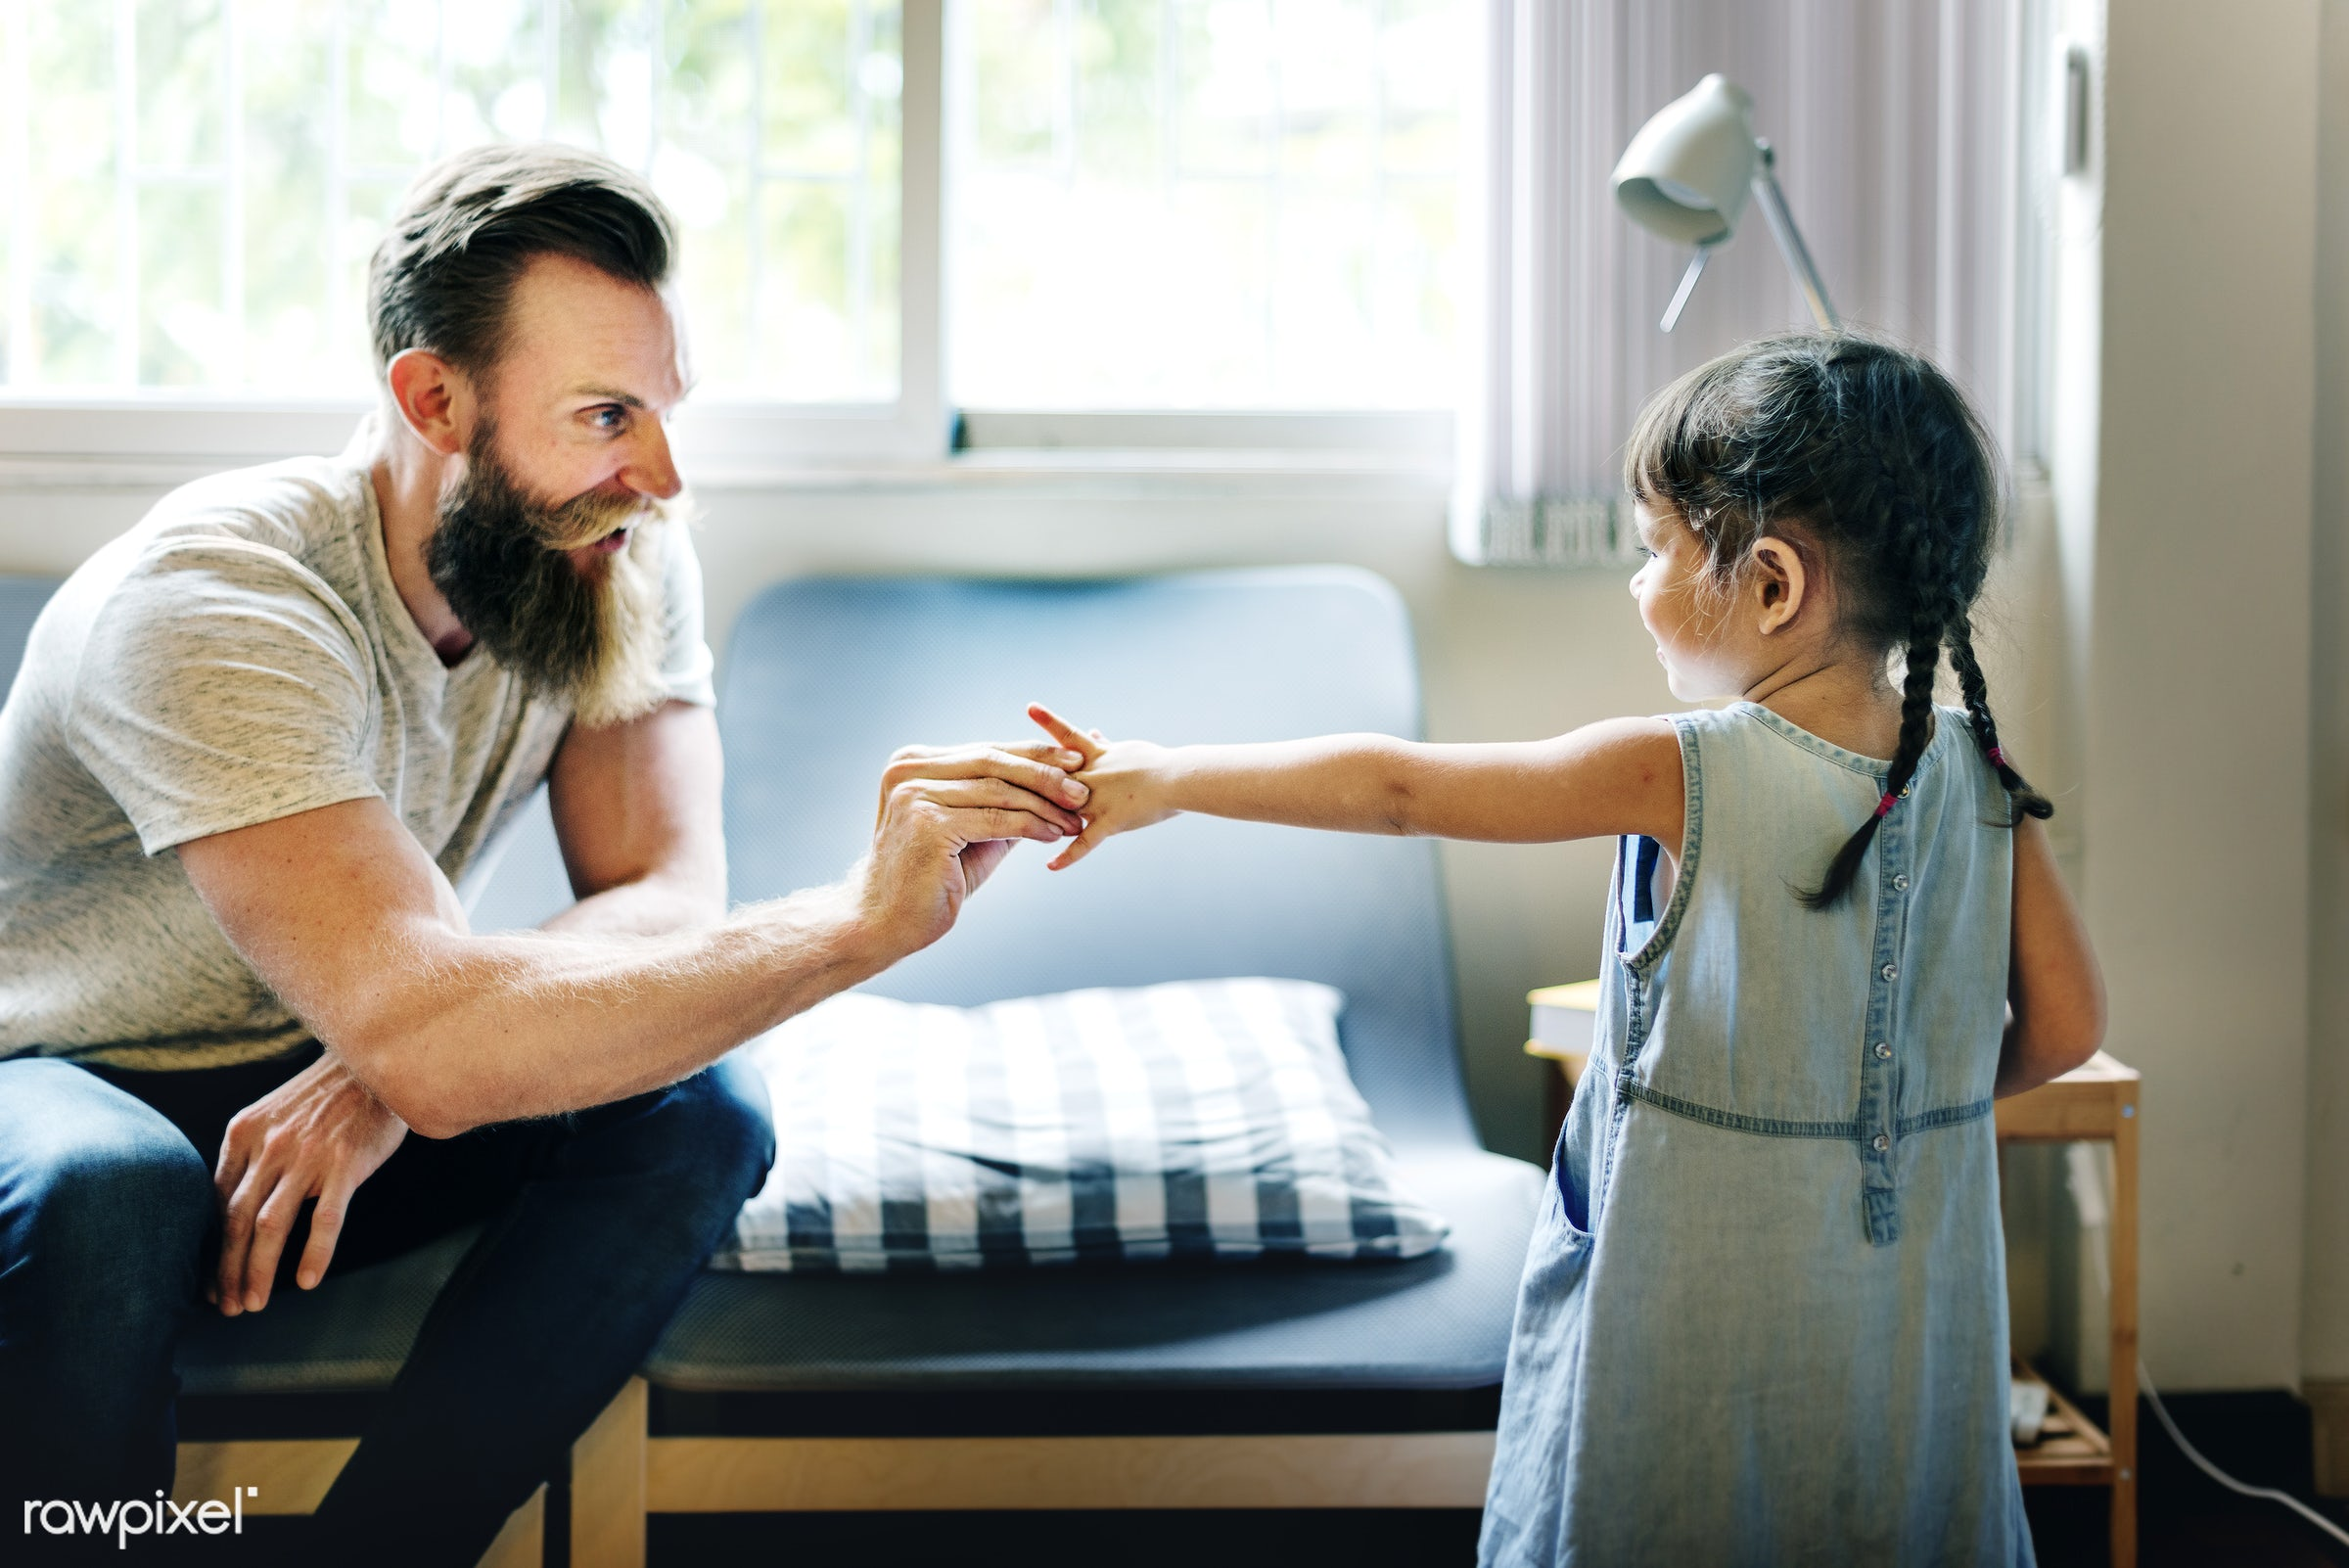 Dad holding his daughter's hand - activity, bonding, carefree, casual, cheerful, child, childhood, communication, dad,...